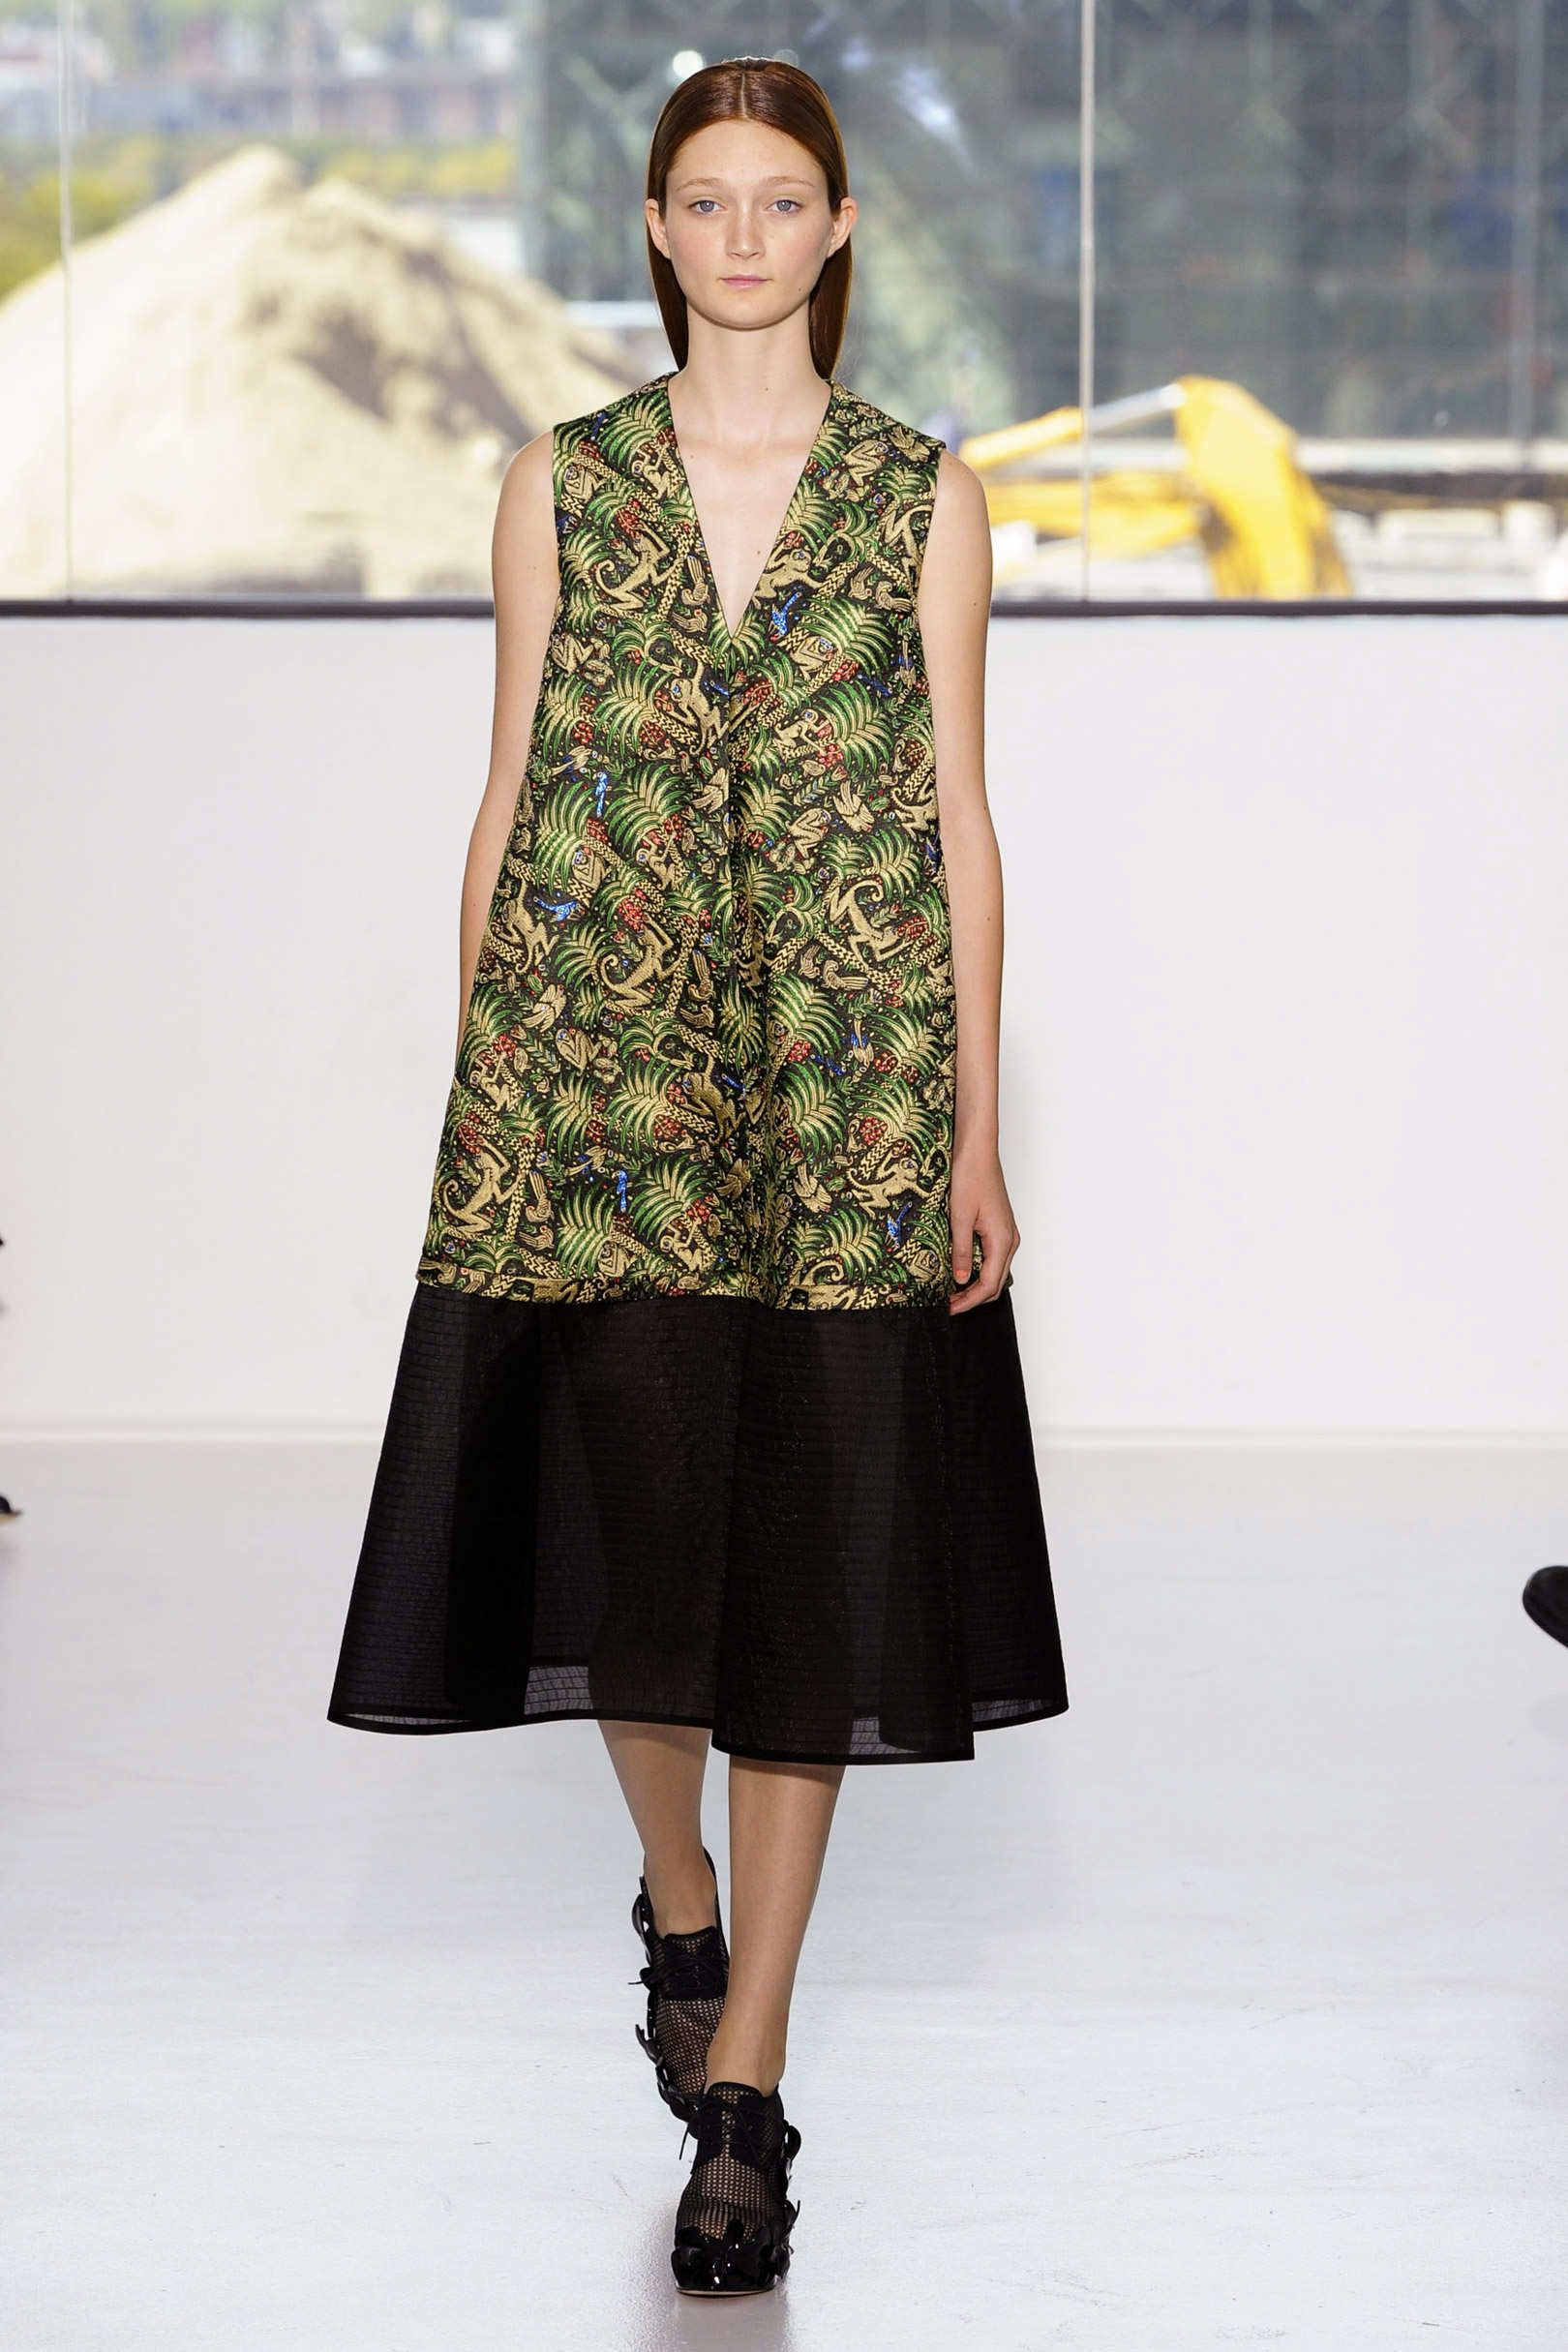 Delpozo S/S 15 RTW - NY Fashion Week NYFW